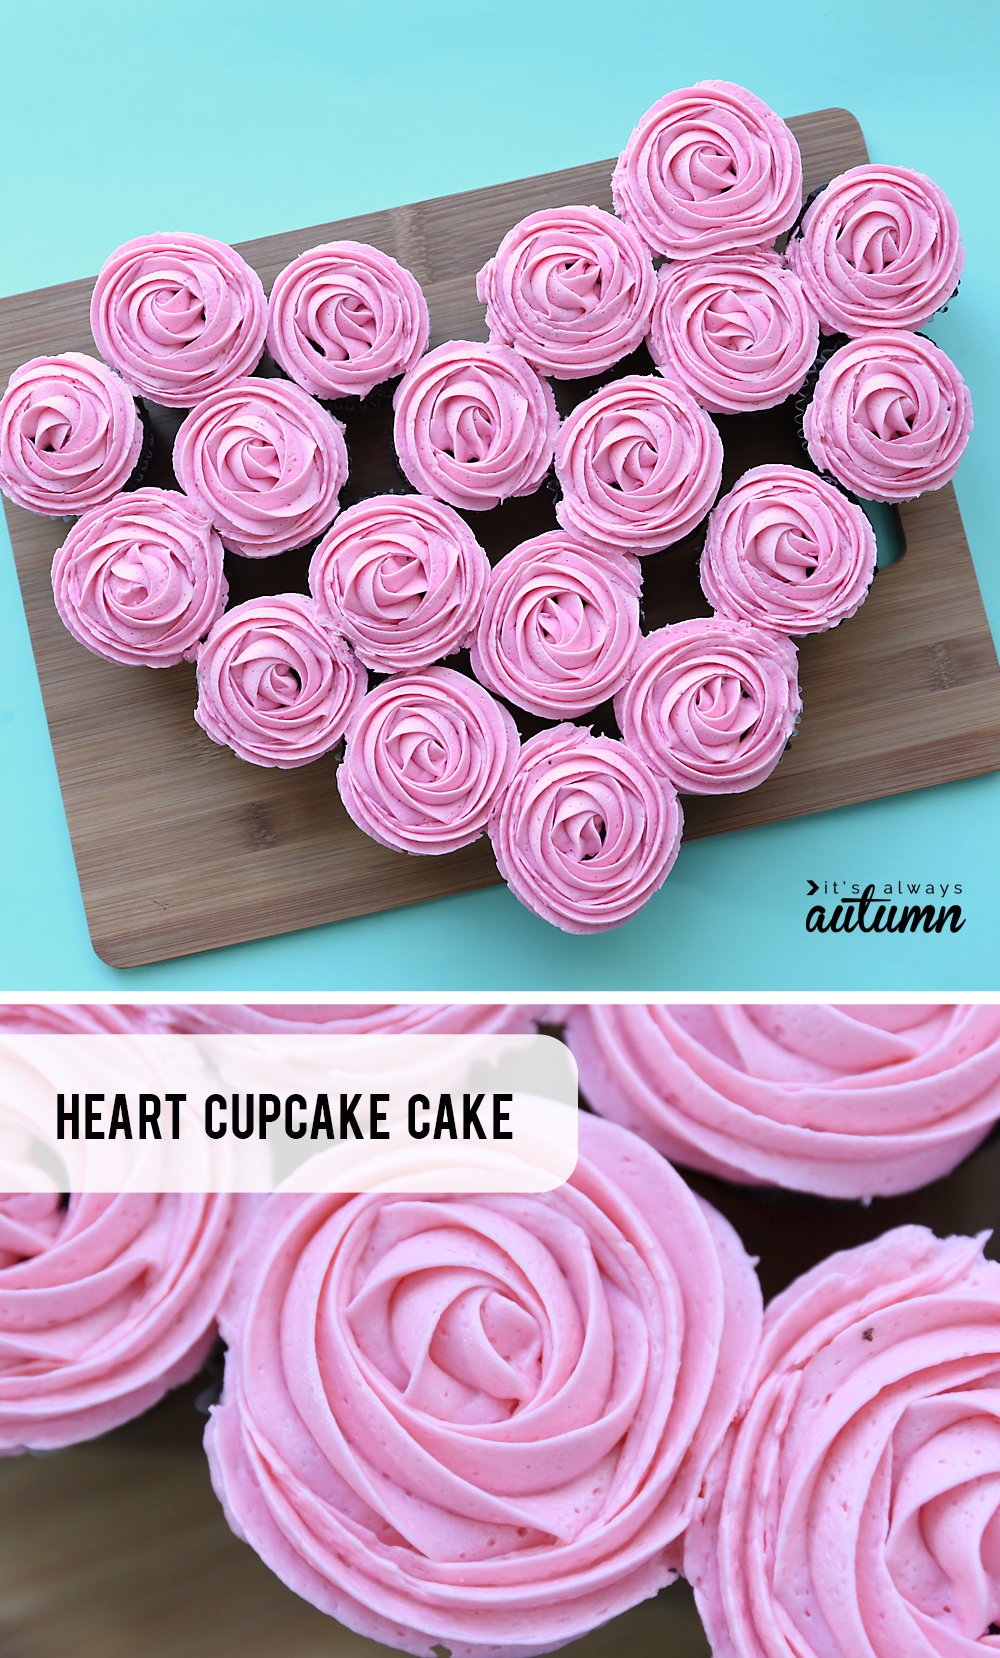 How to make a heart shaped cupcake pullapart cake for Valentine's Day! Easy Valentines treat.